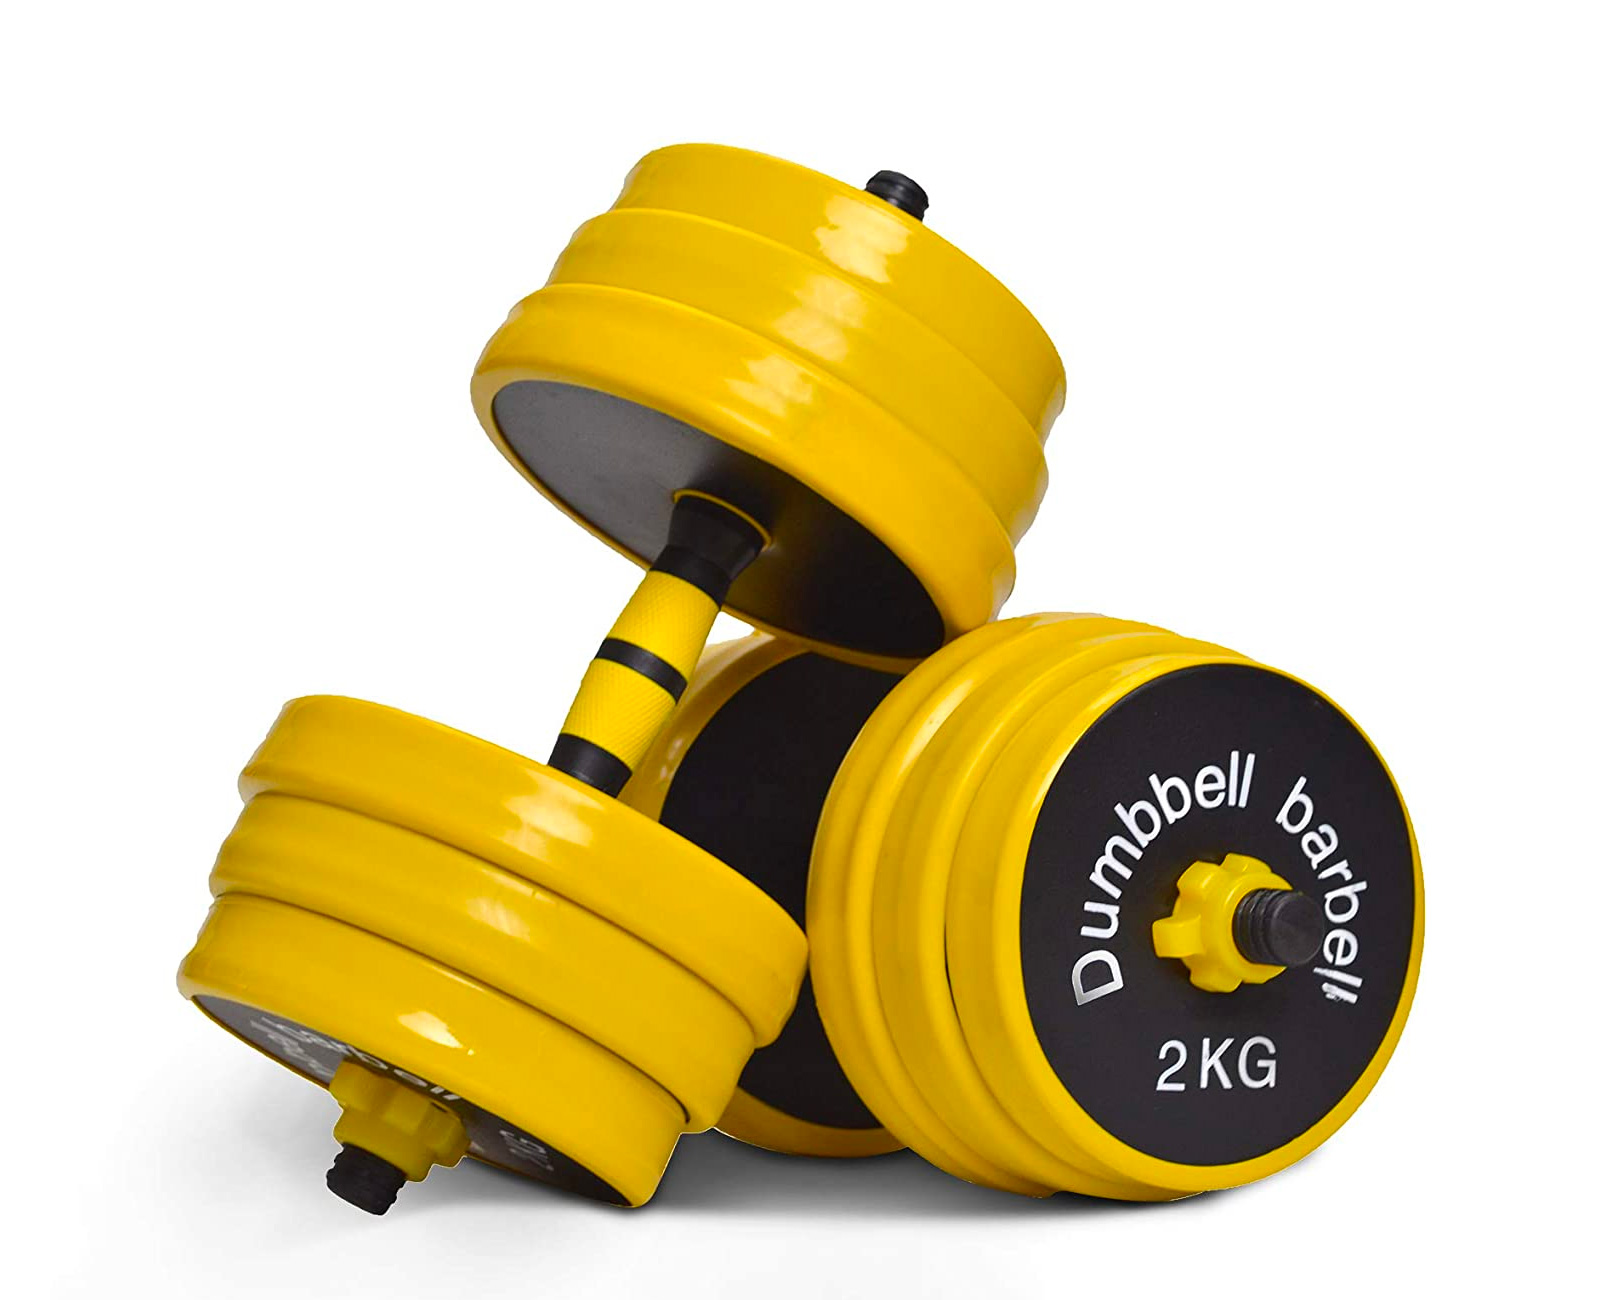 We're Pretty Pumped On This Nice C Combo Weight Set at werd.com